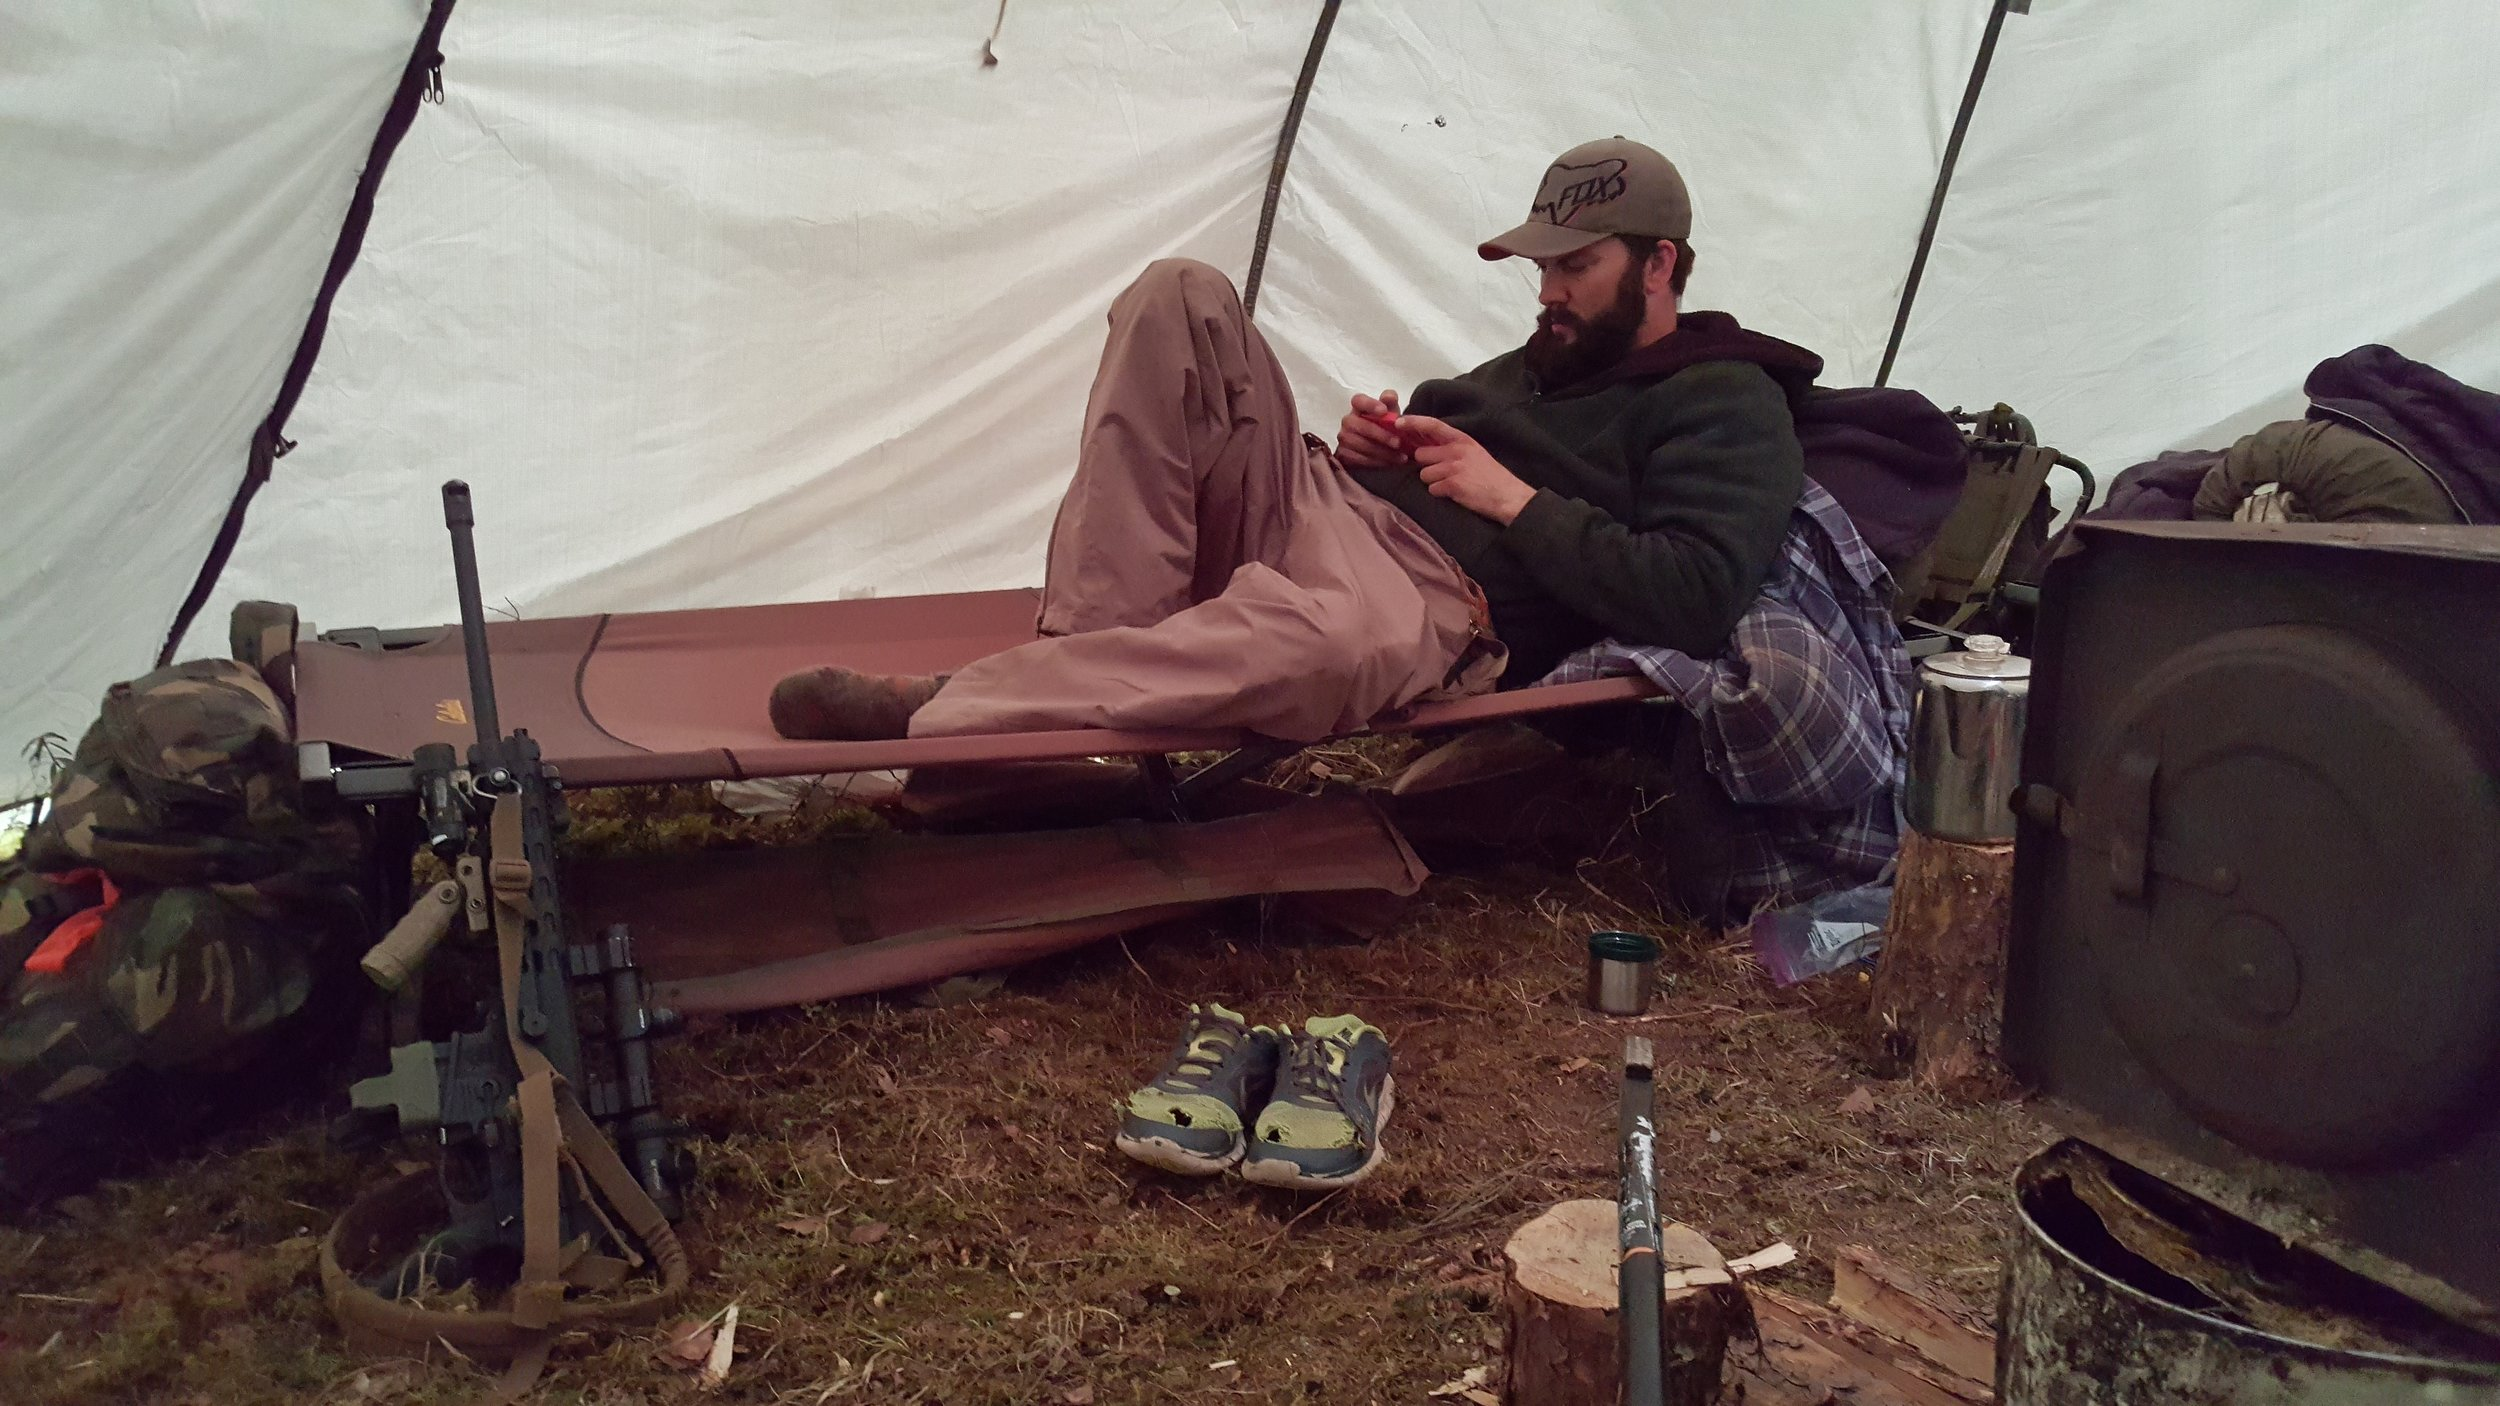 A 12 man tipi has plenty of room, and is light relatively light weight.